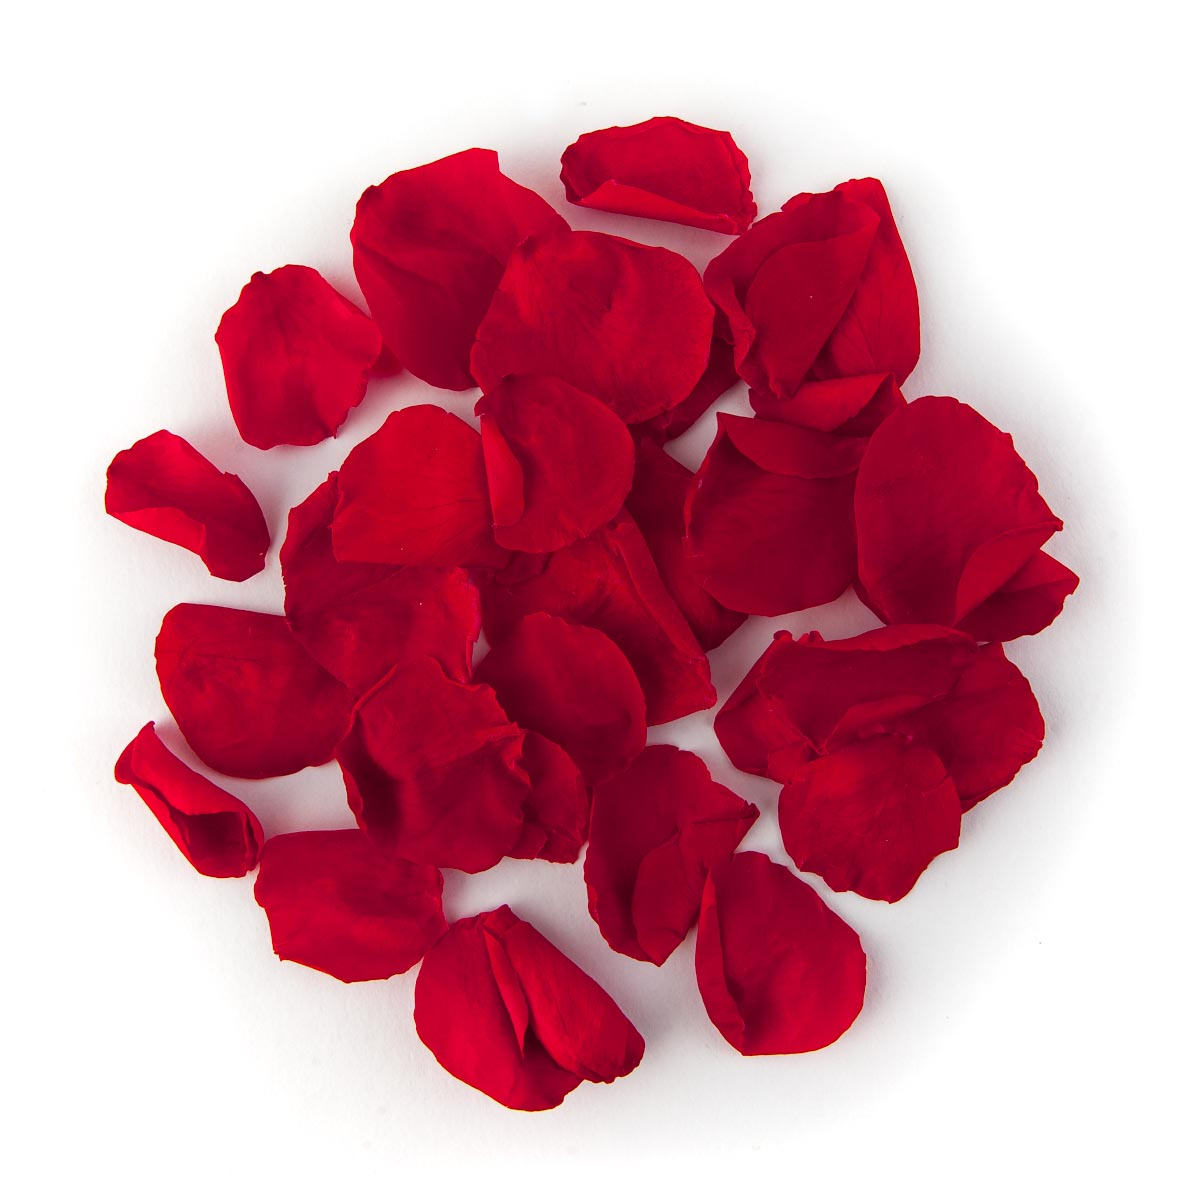 Red Coloured Rose Petals